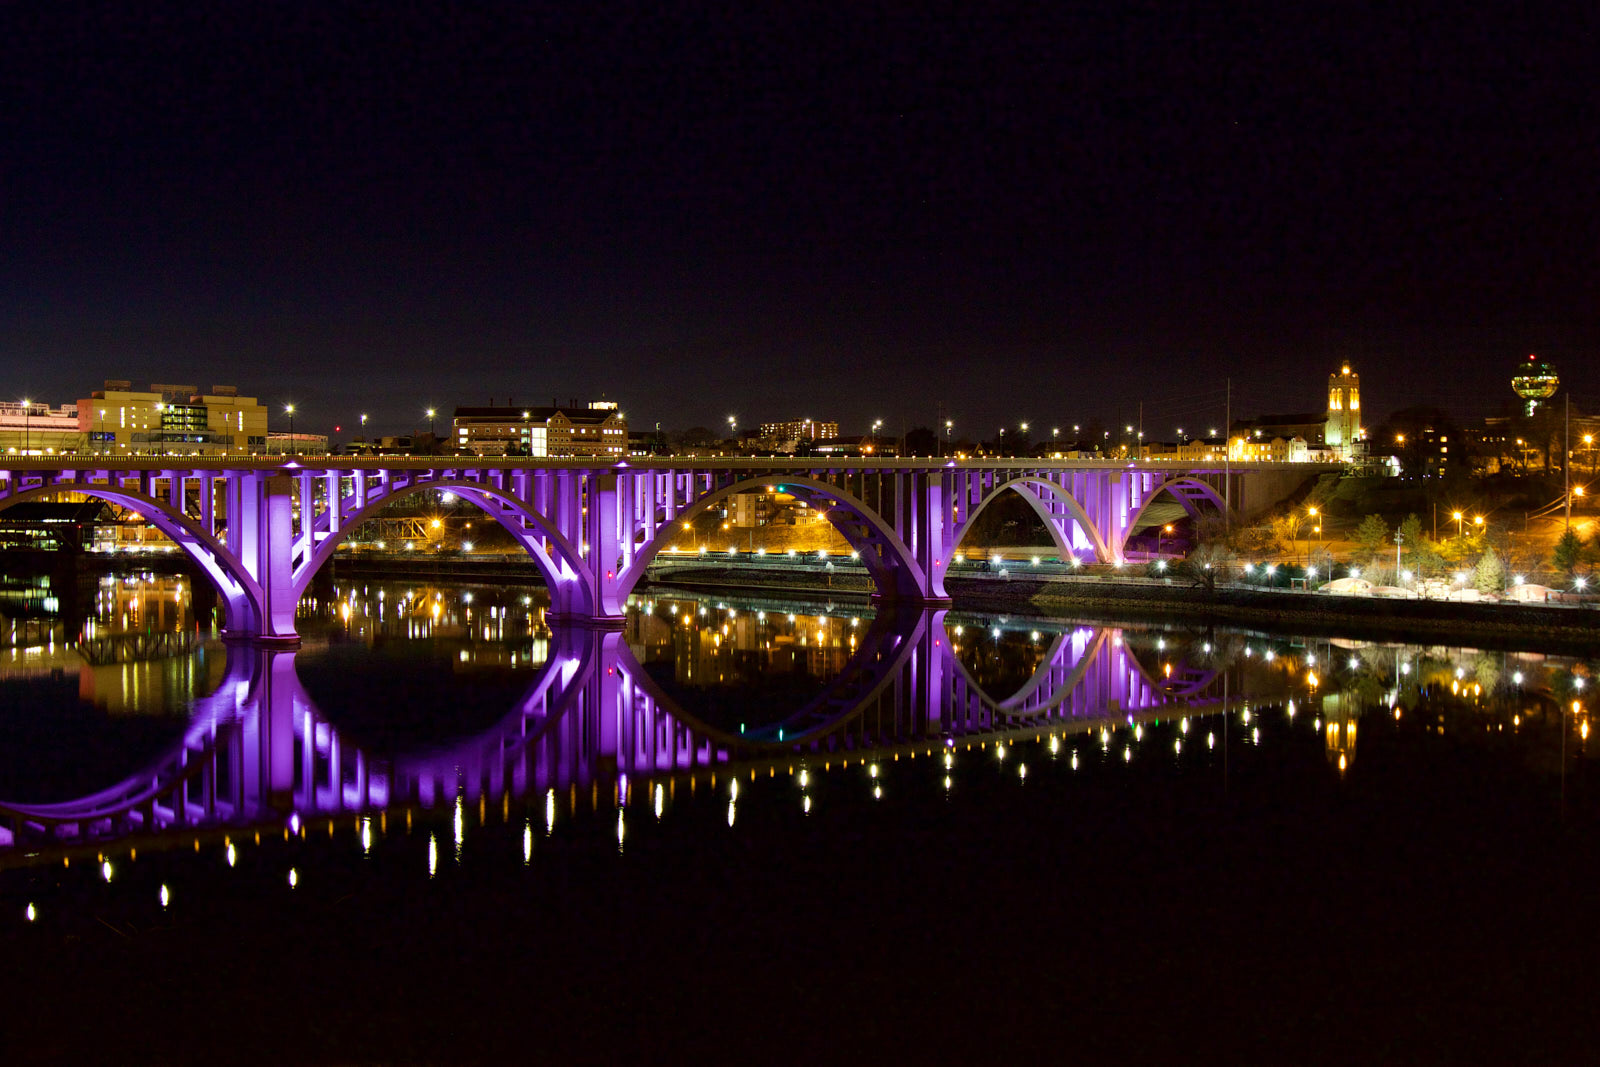 Henley Street Bridge Professional photographer in Knoxville, TN